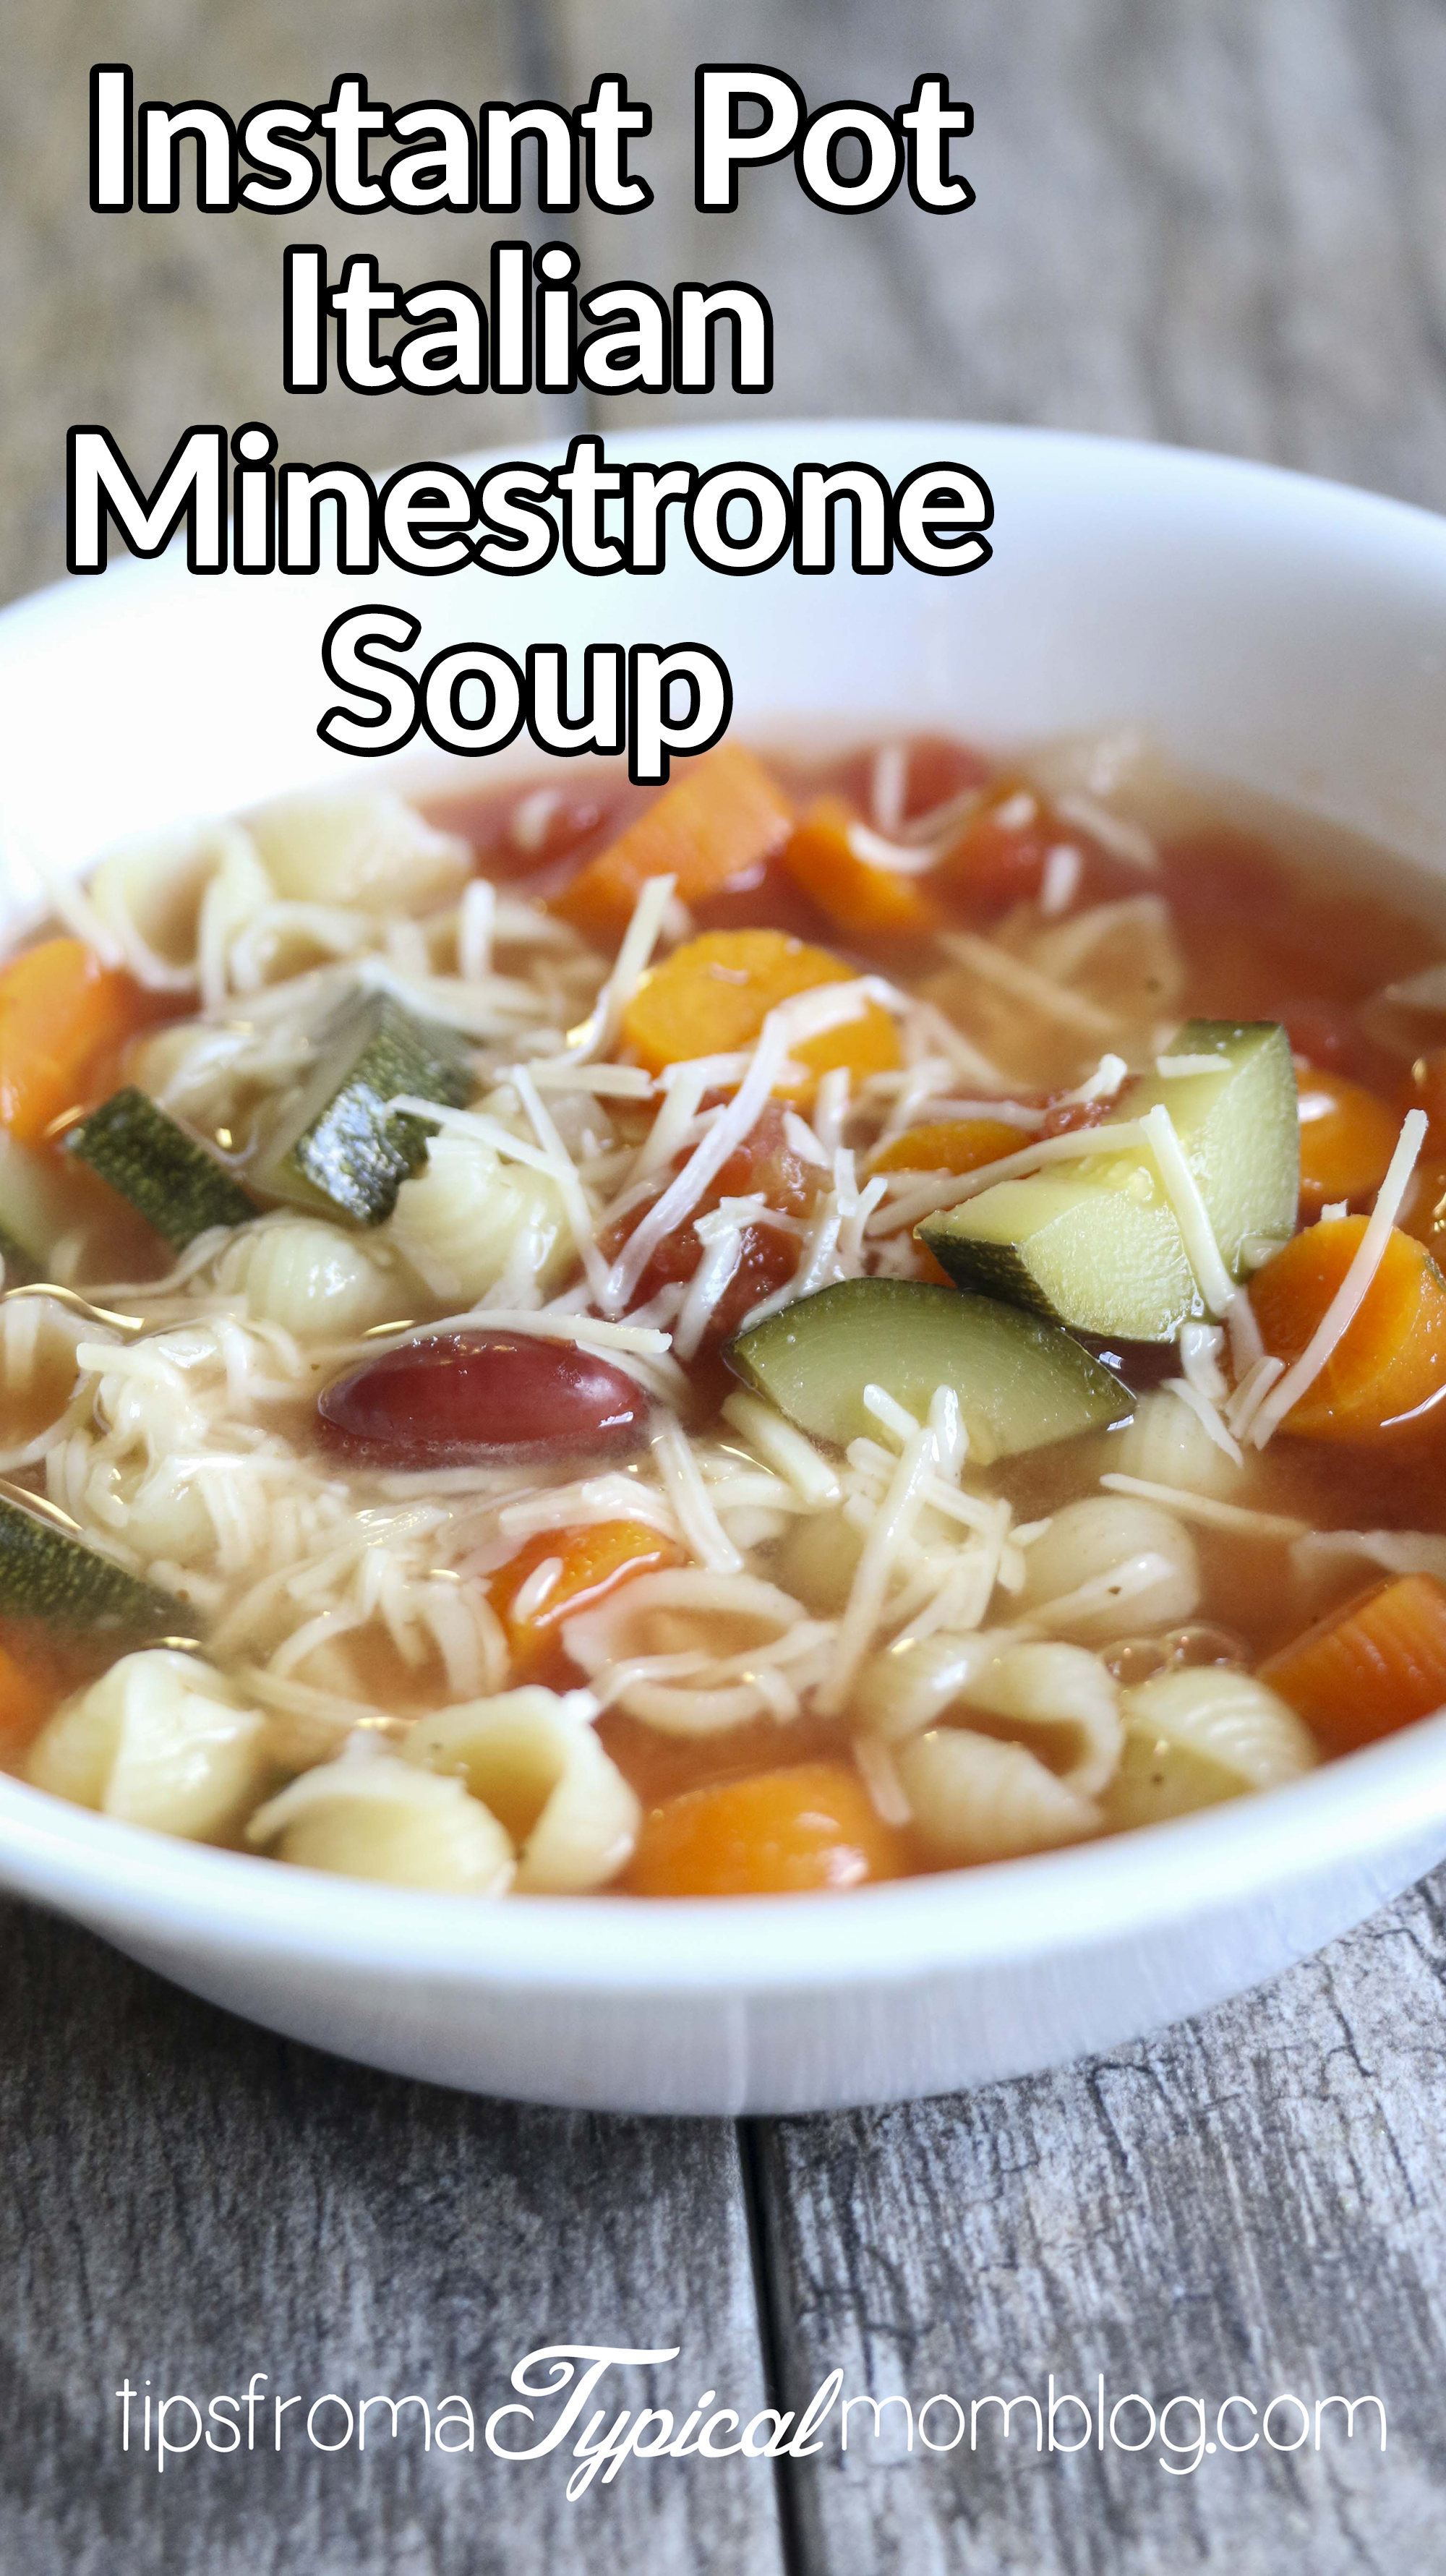 Instant Pot Italian Minestrone Soup Recipe Tips From A